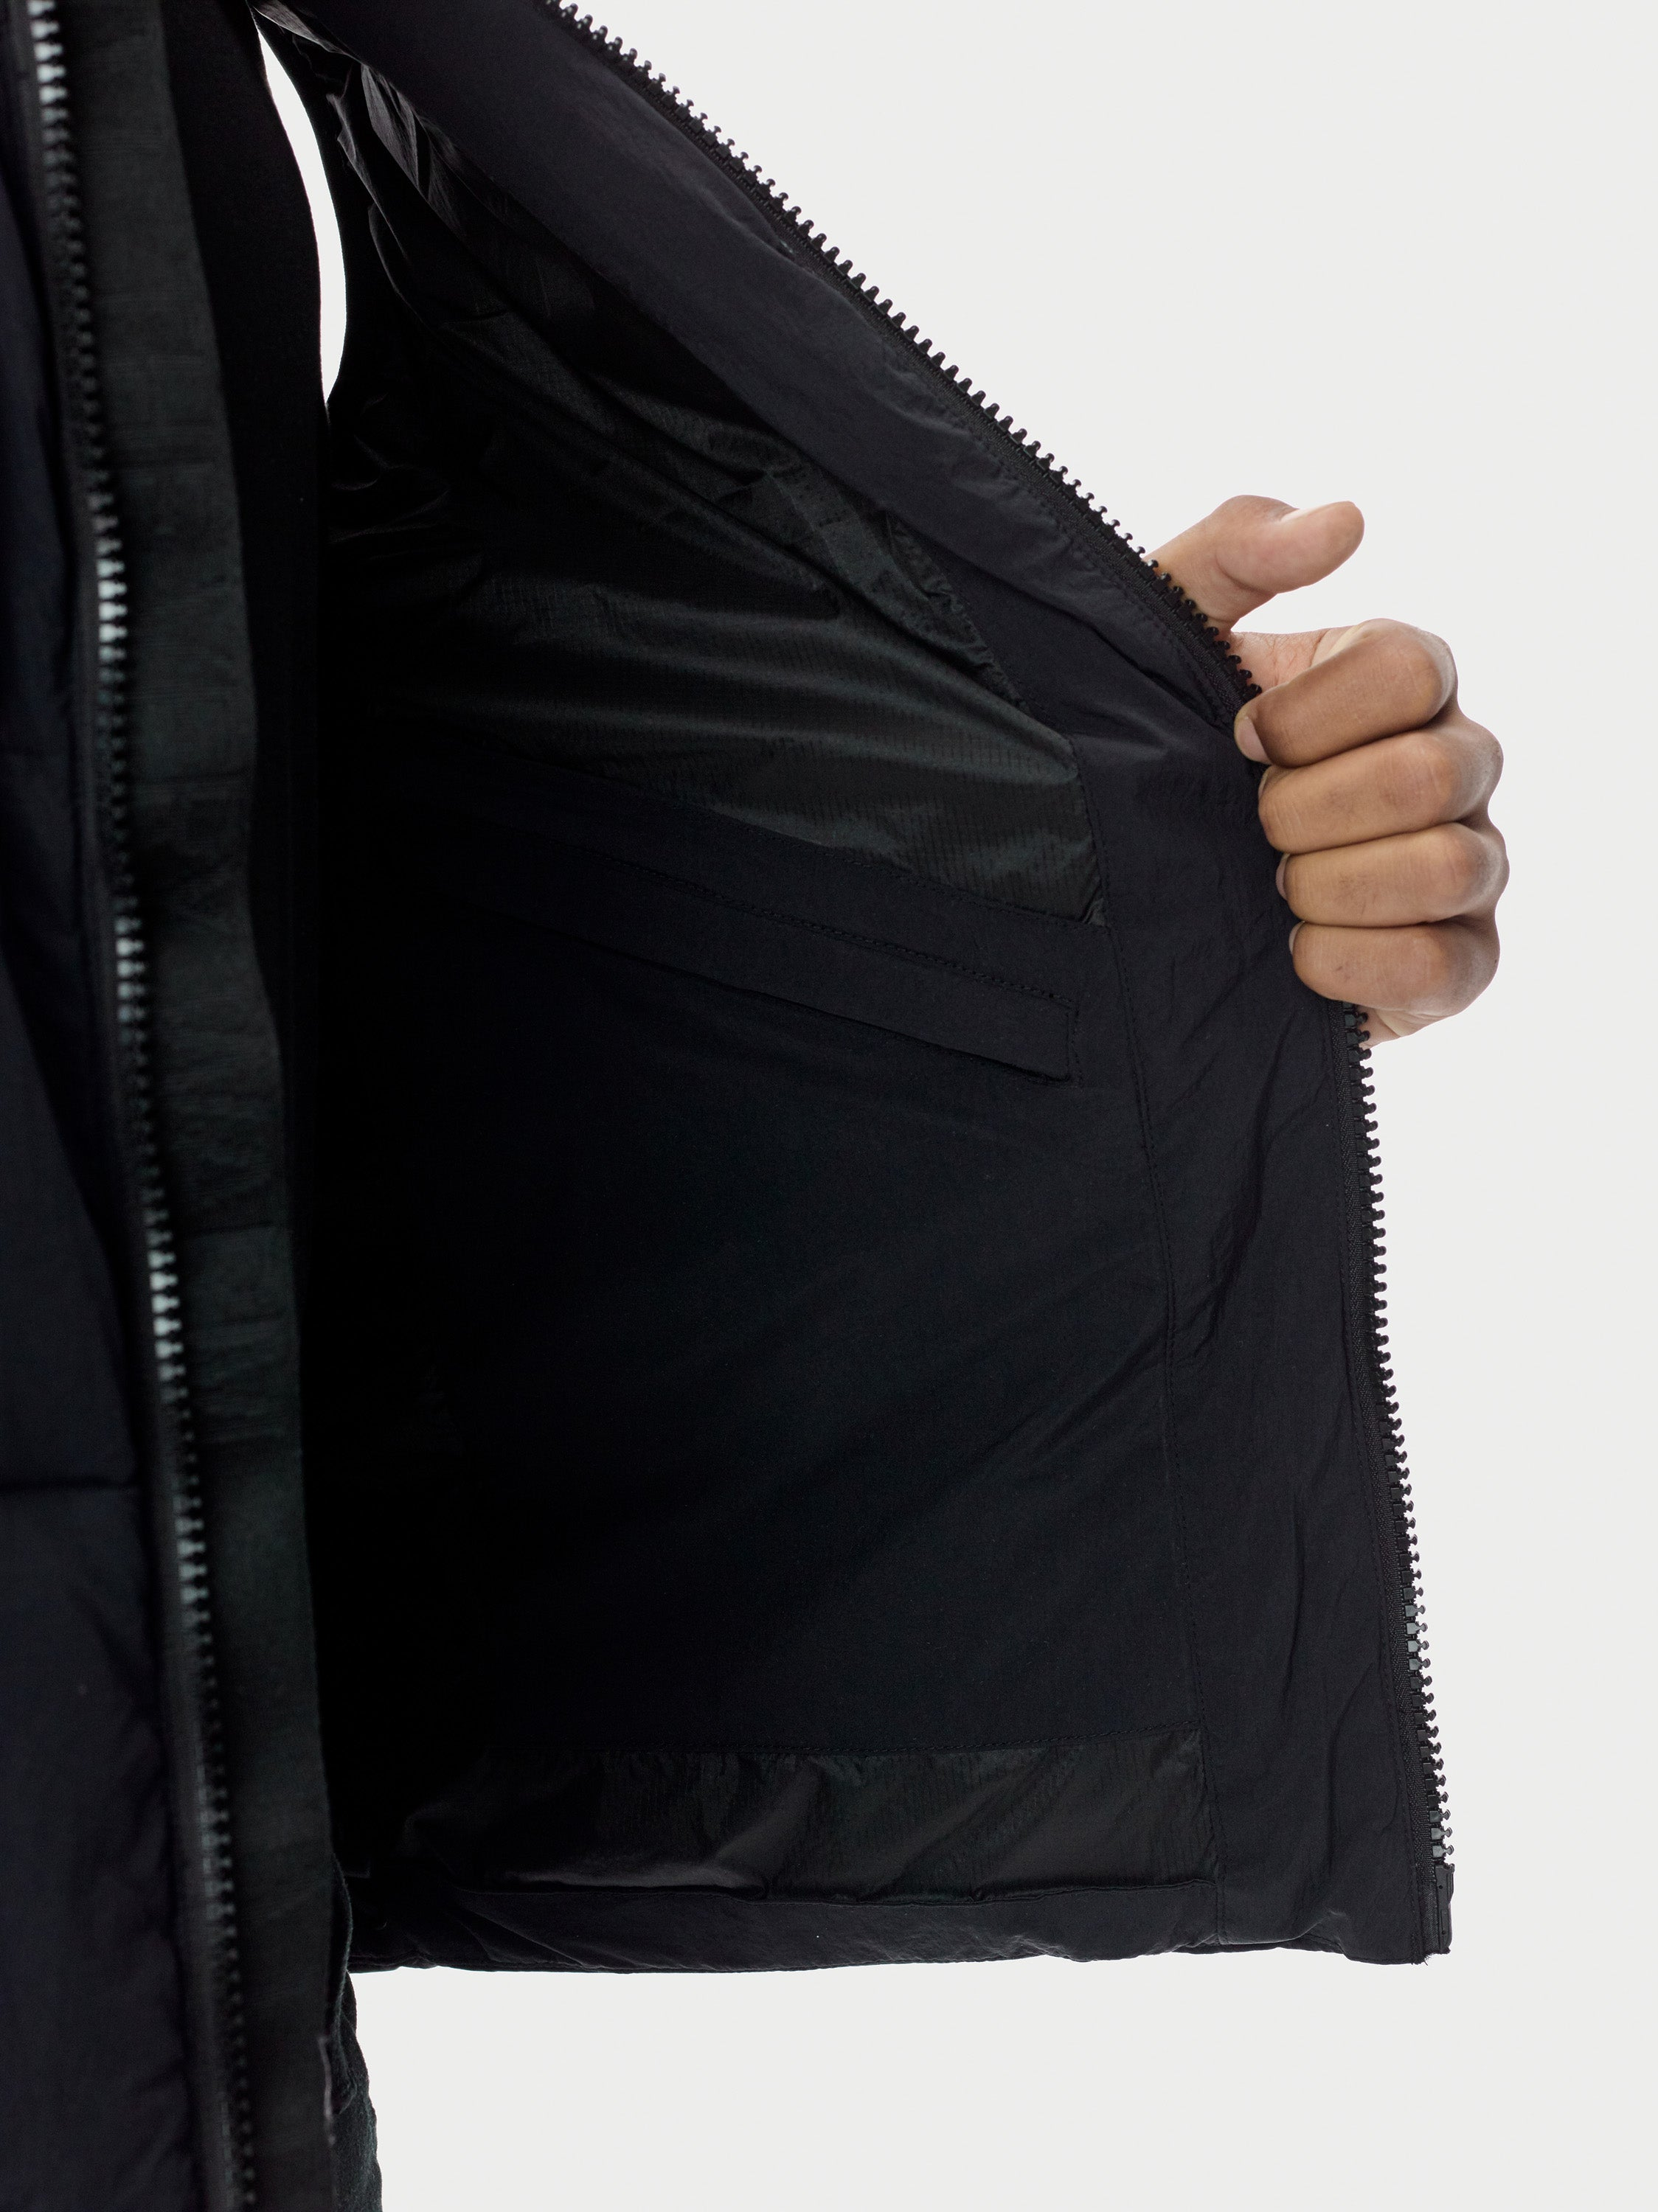 Filled Bubble Puffer Vest - Black [bomber_Vandal], [The Very Warm], [The Very Warm]